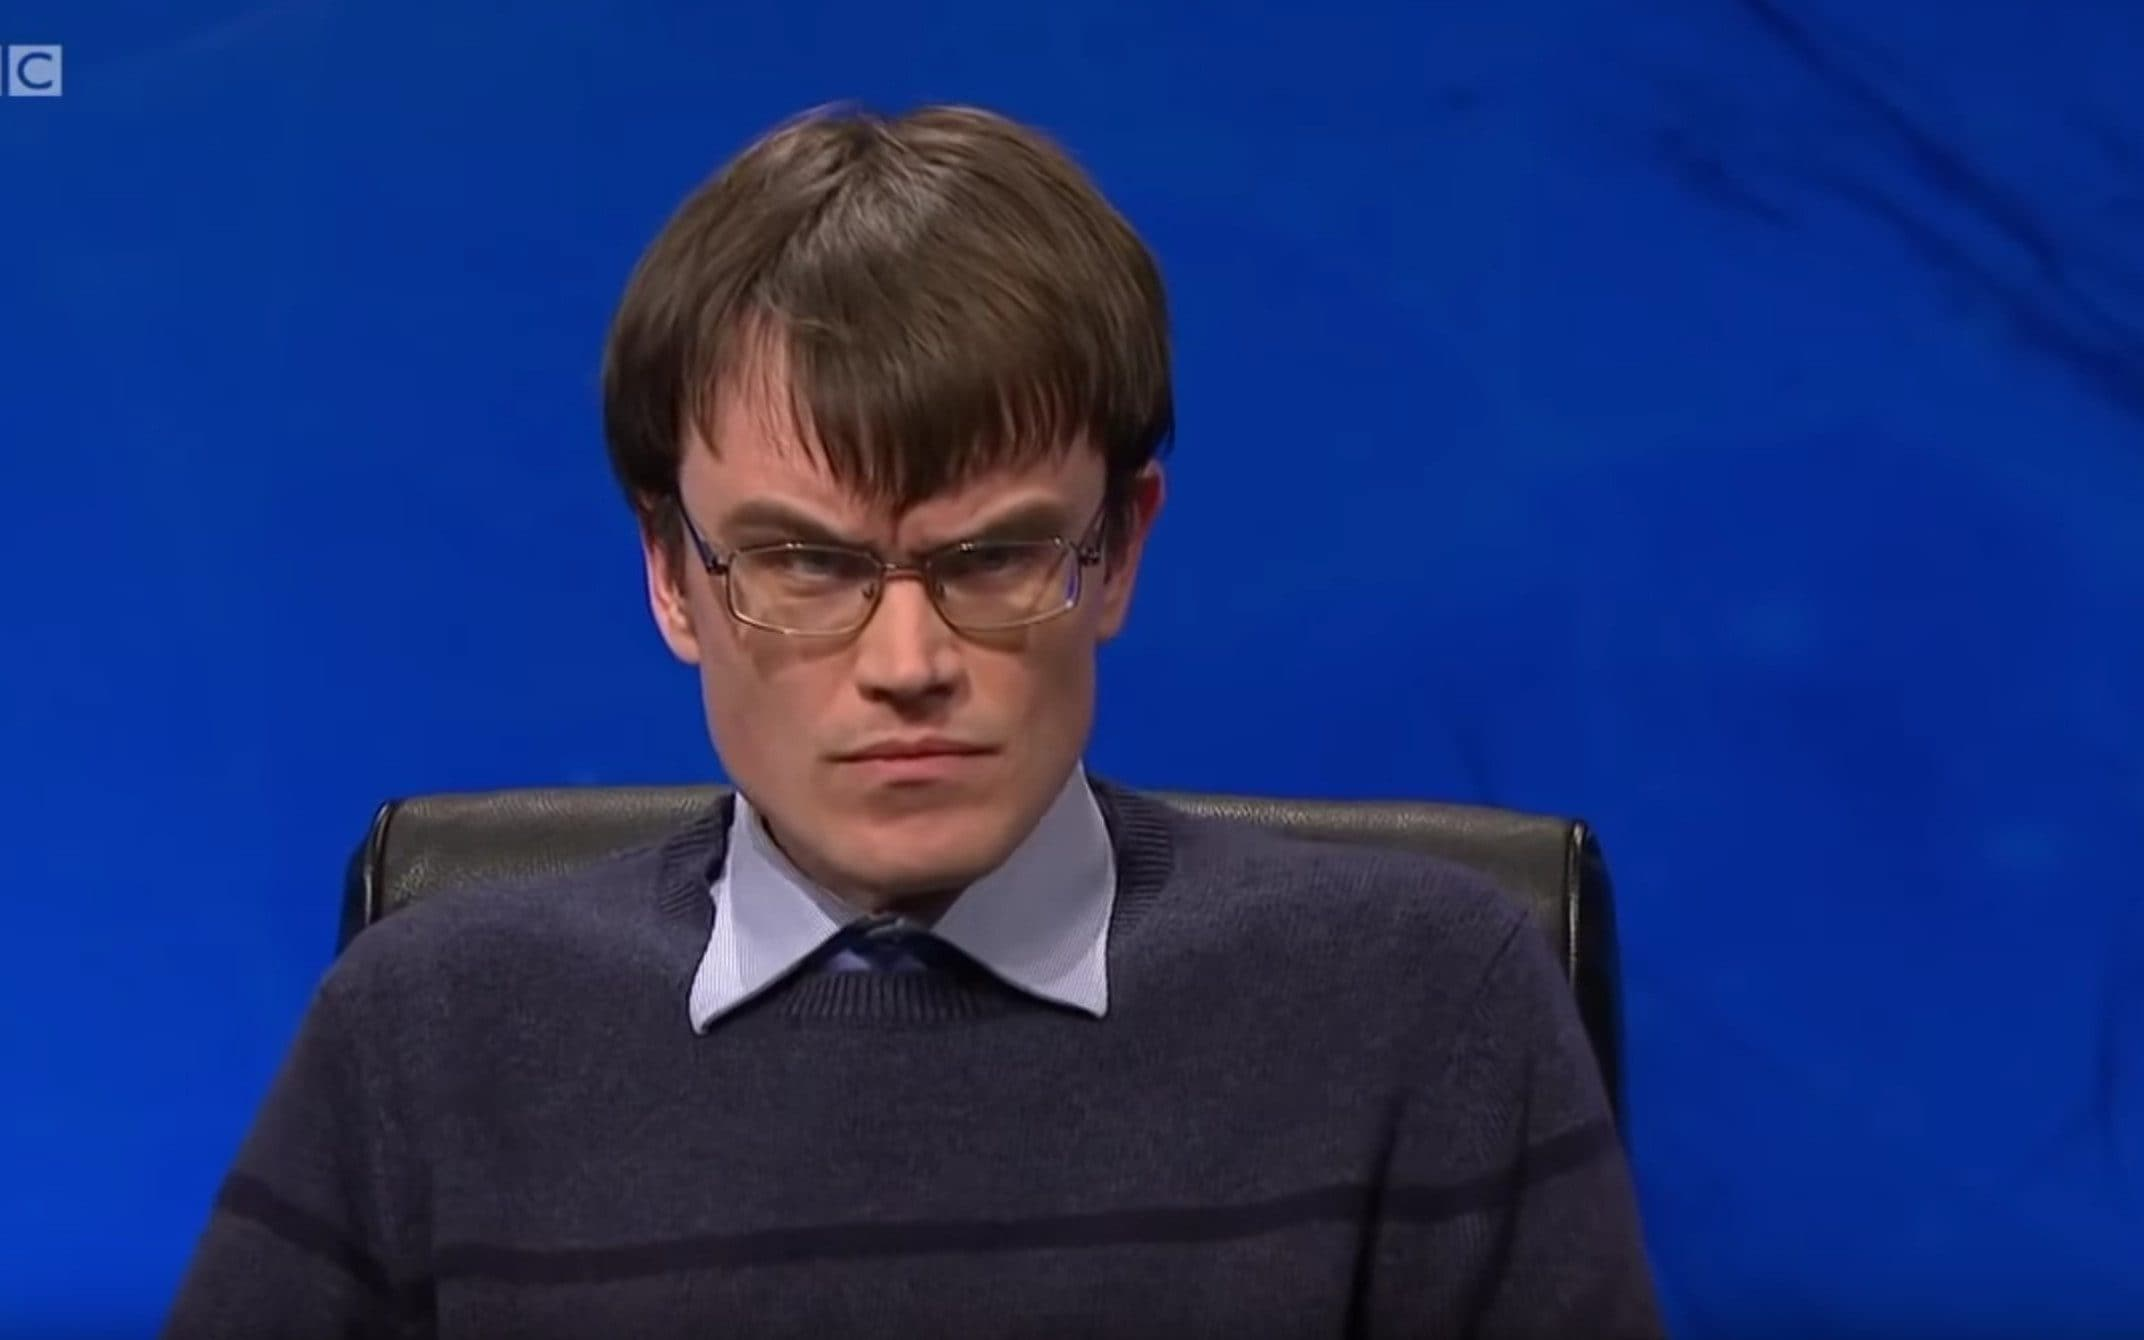 University Challenge S Eric Monkman I Don T See Myself As An